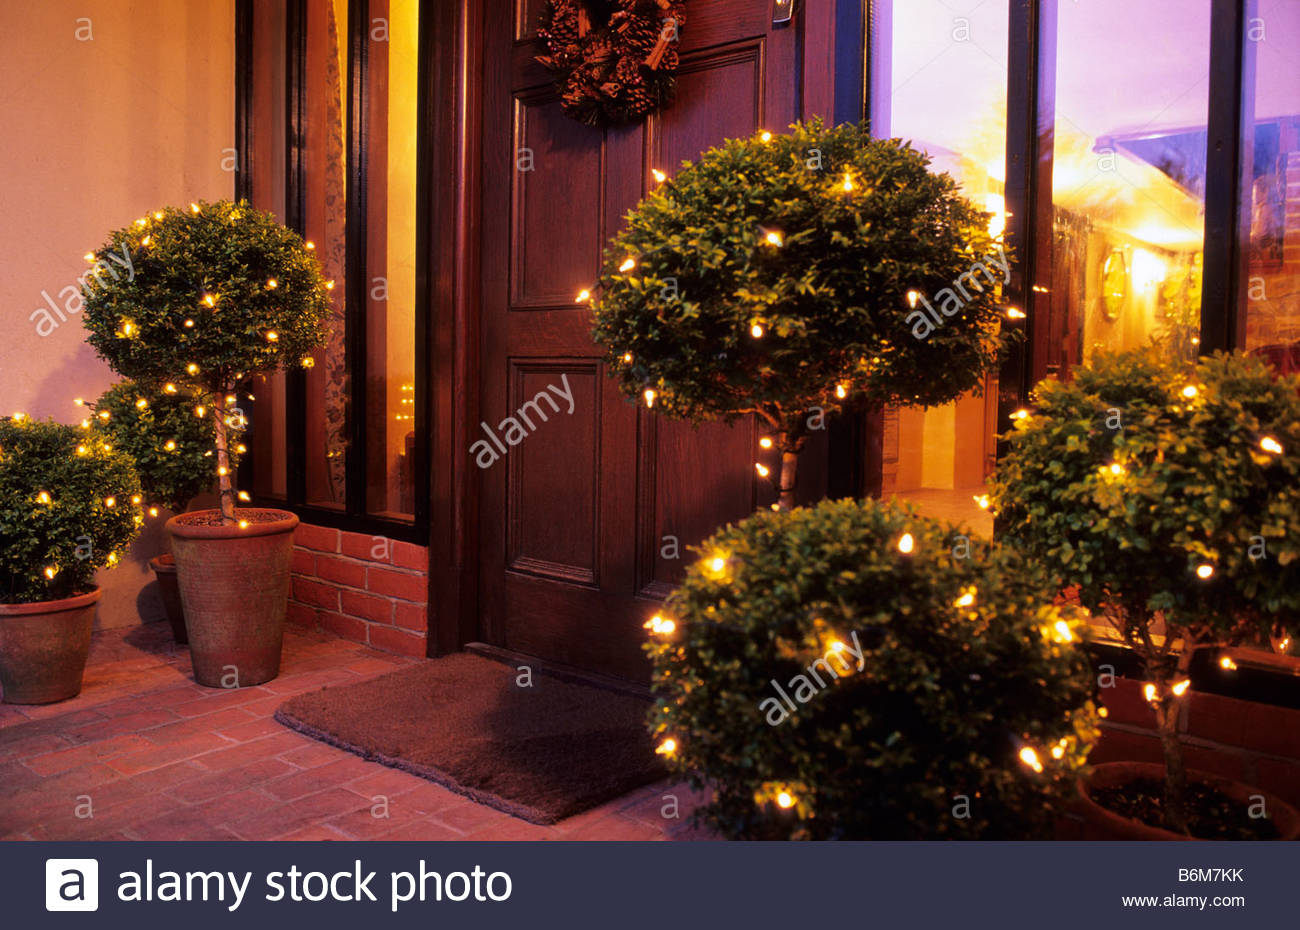 Outdoor christmas decorations - Stock Photo The Oast Houses Hampshire Outdoor Christmas Decorations Lights On Boxwood Topiary In Terracotta Pots On Front Porch